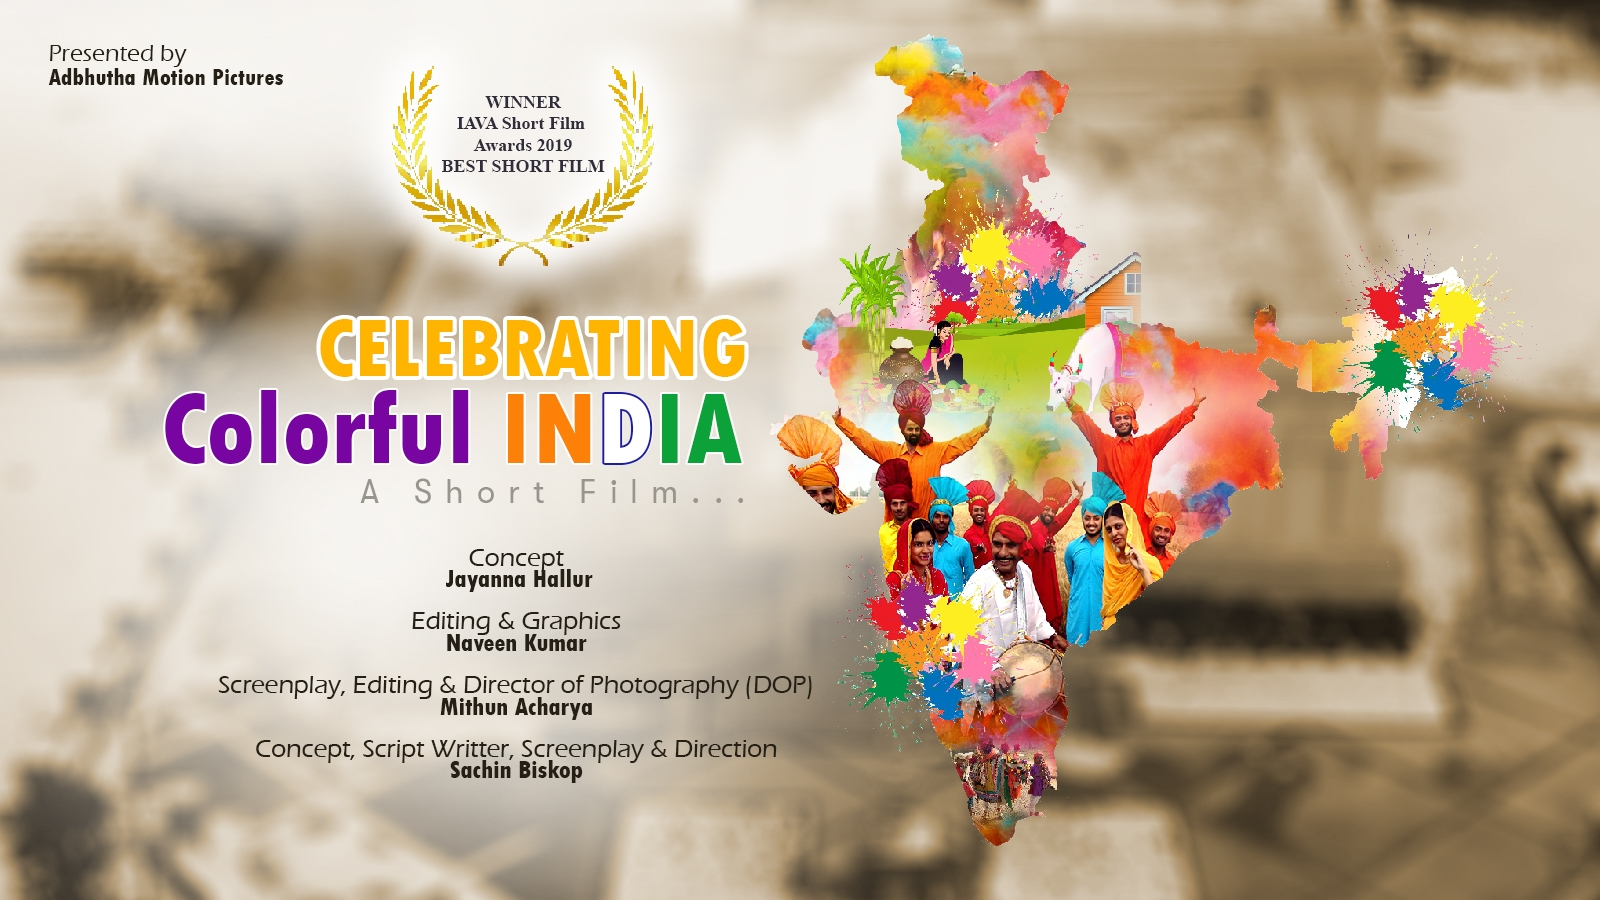 Award Winning English Short Film (2019) | Celebrating Colorful INDIA | on Indian Festivals